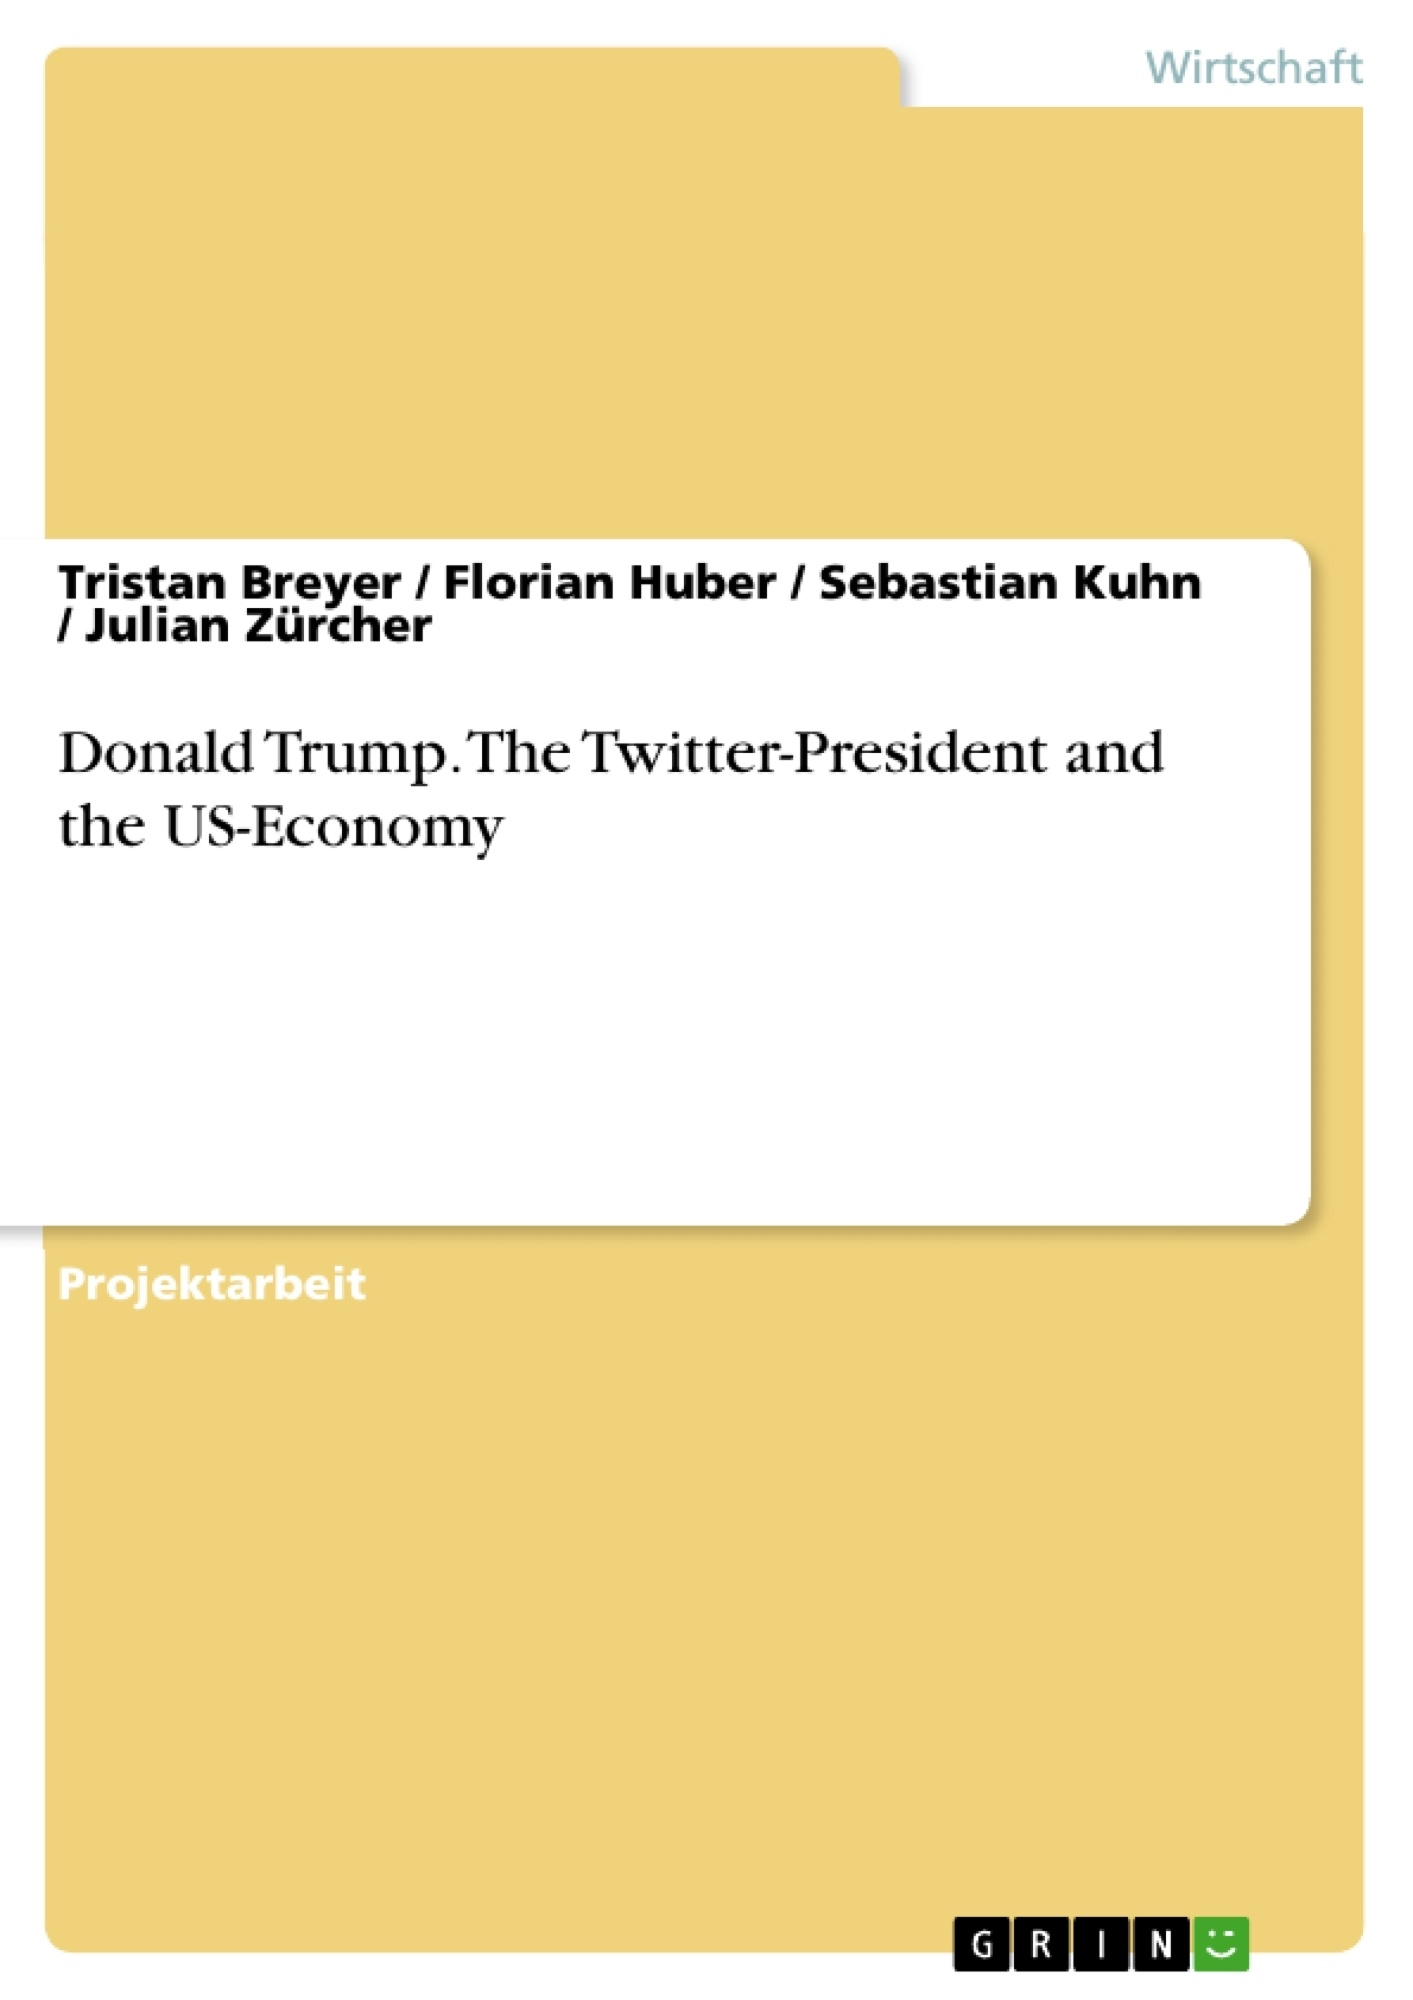 Titel: Donald Trump. The Twitter-President and the US-Economy